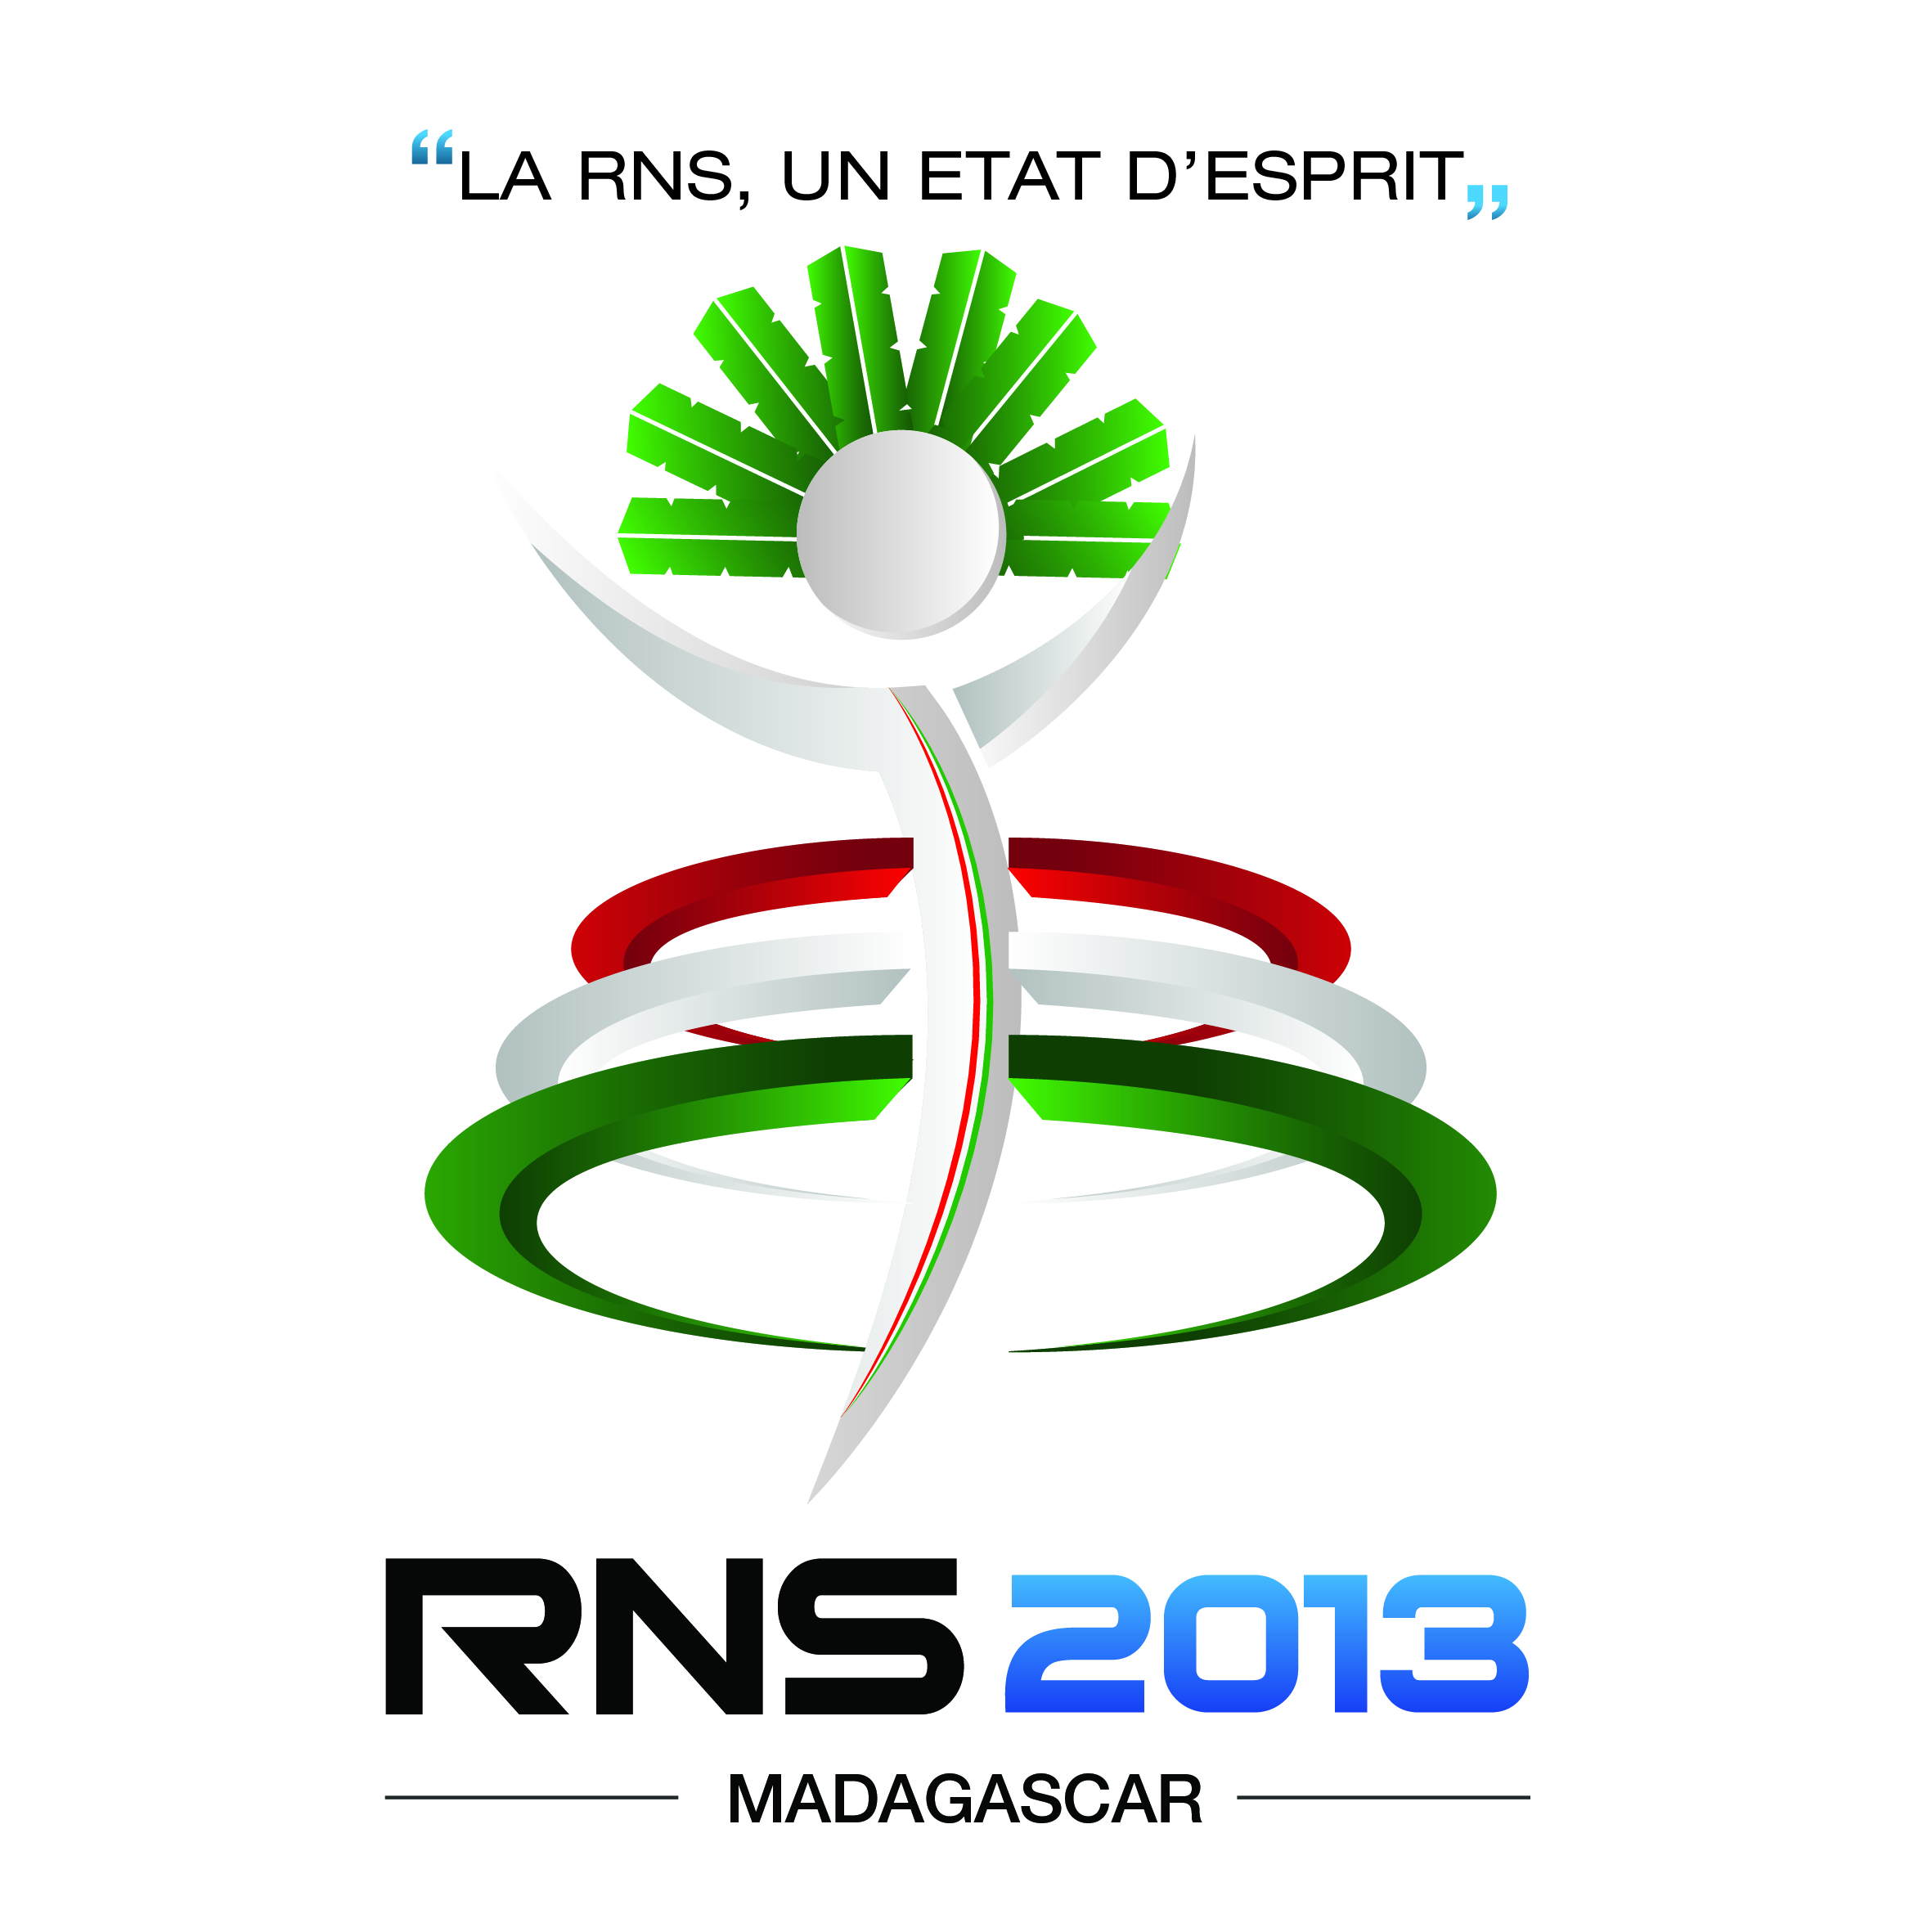 Rencontres nationales de l'ingenierie publique 2016